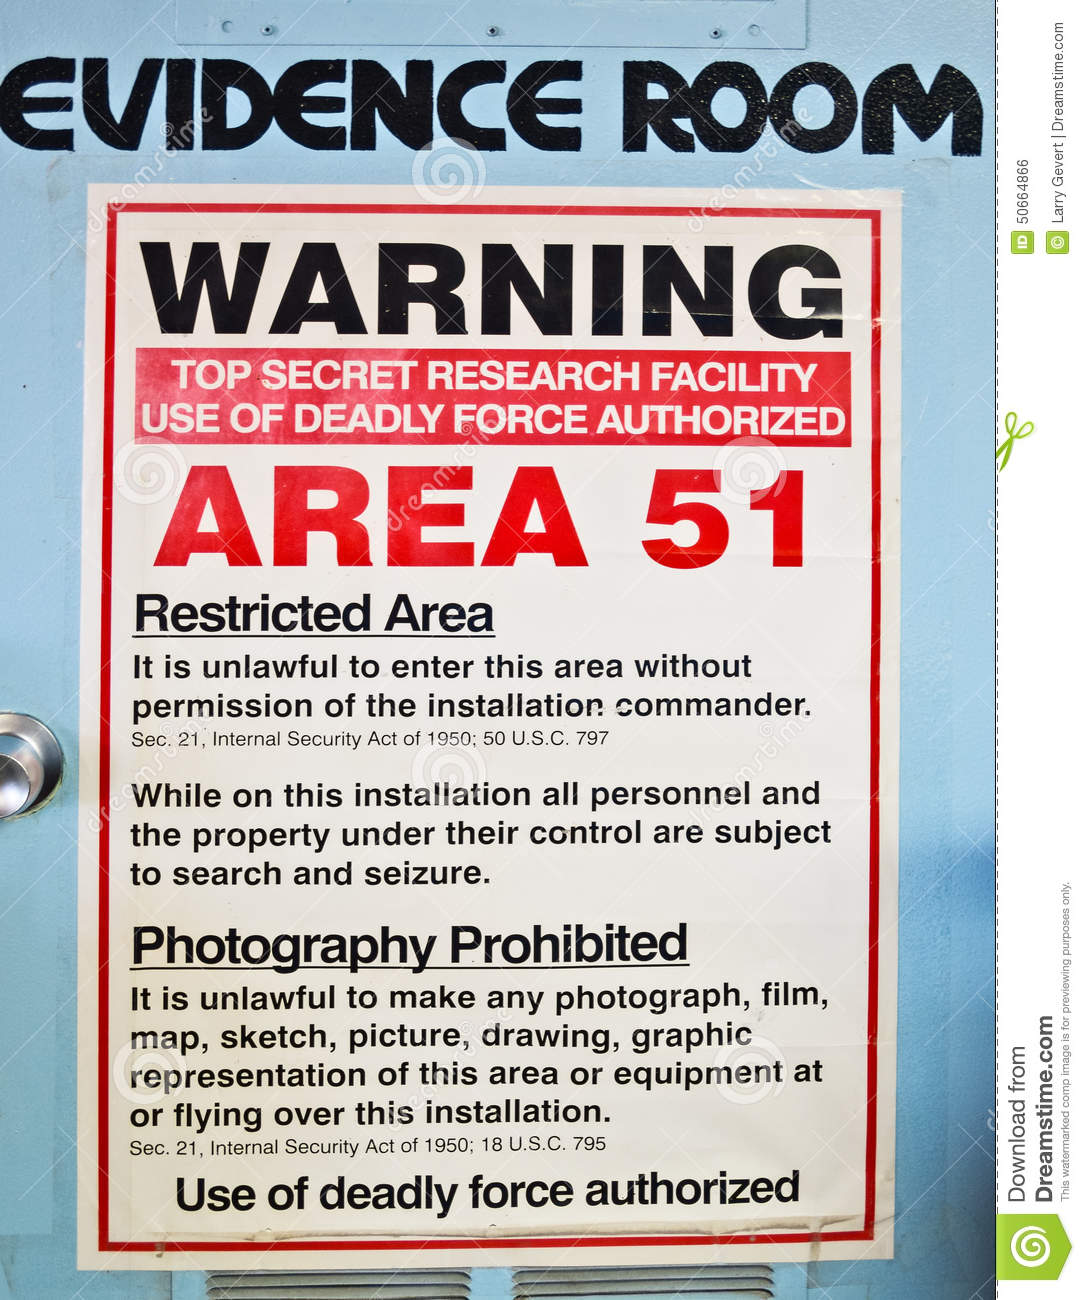 Evidence Room, Area 51 Stock Photo - Image: 50664866